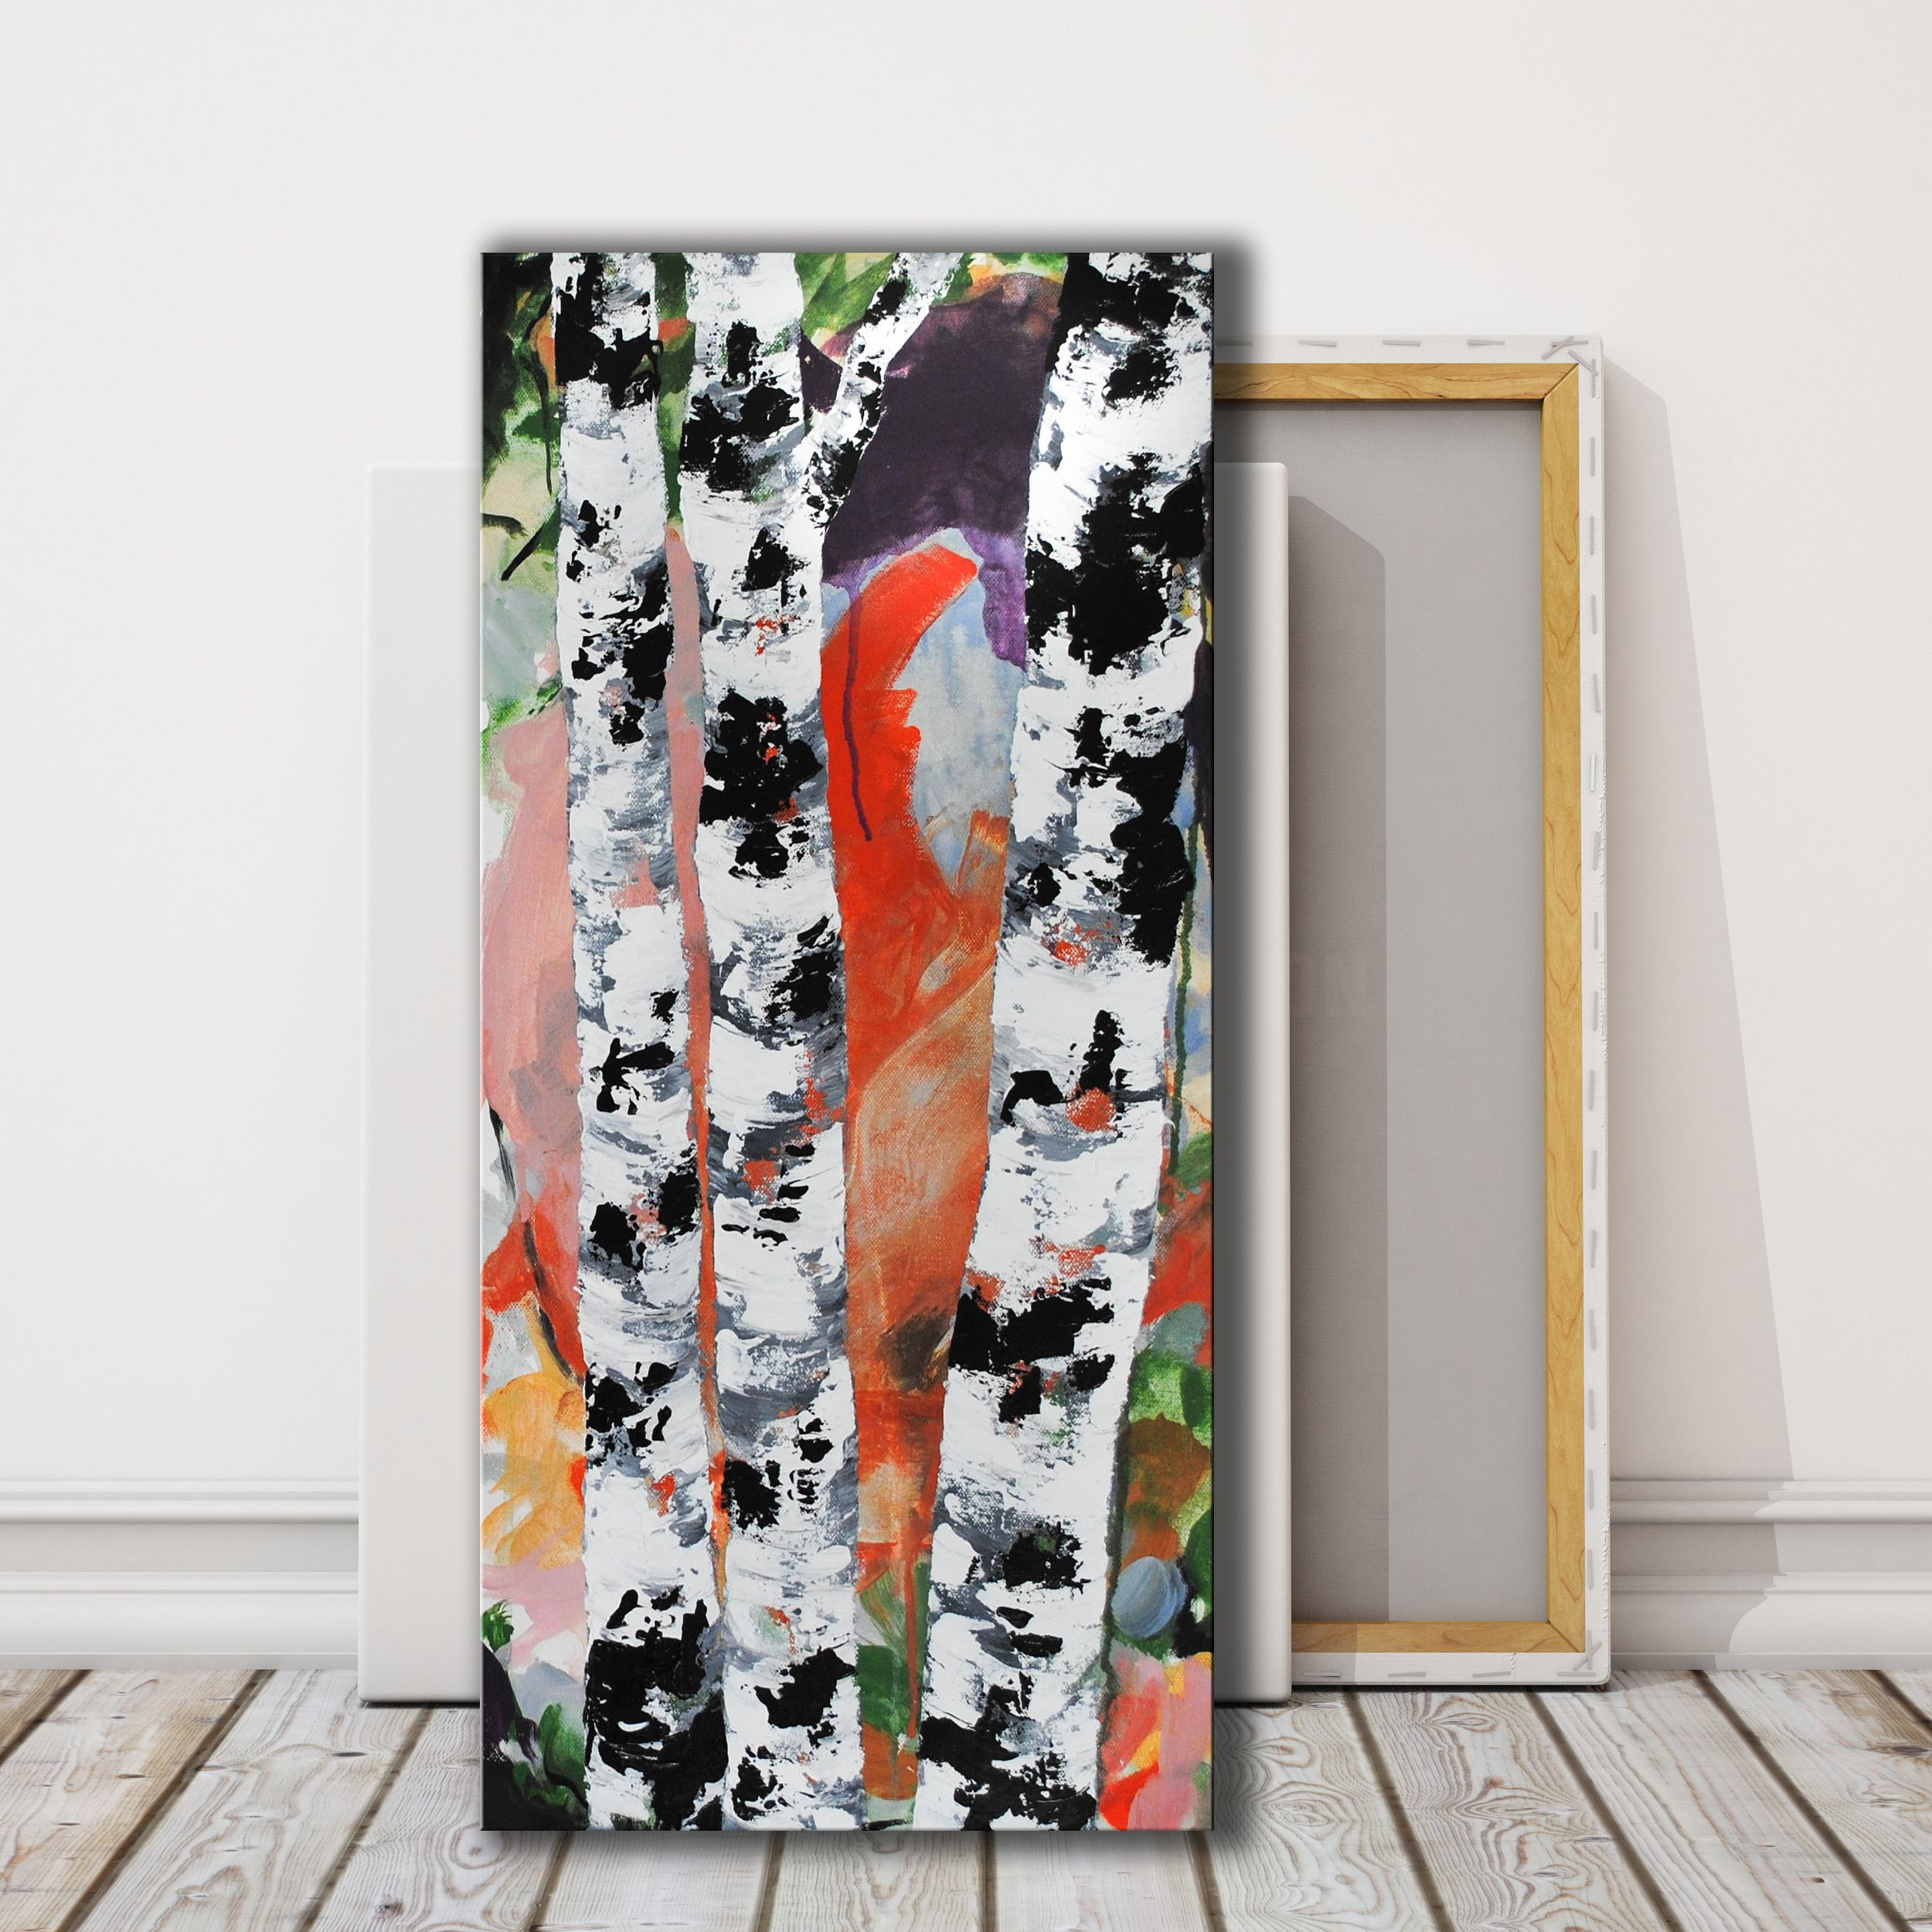 Orange Abstract Birch Tree Painting, Vertical Abstract Art  #birchtreeart #birchtreepainting #abstractbirchtrees #verticalcanvas #modernart #abstractlandscape